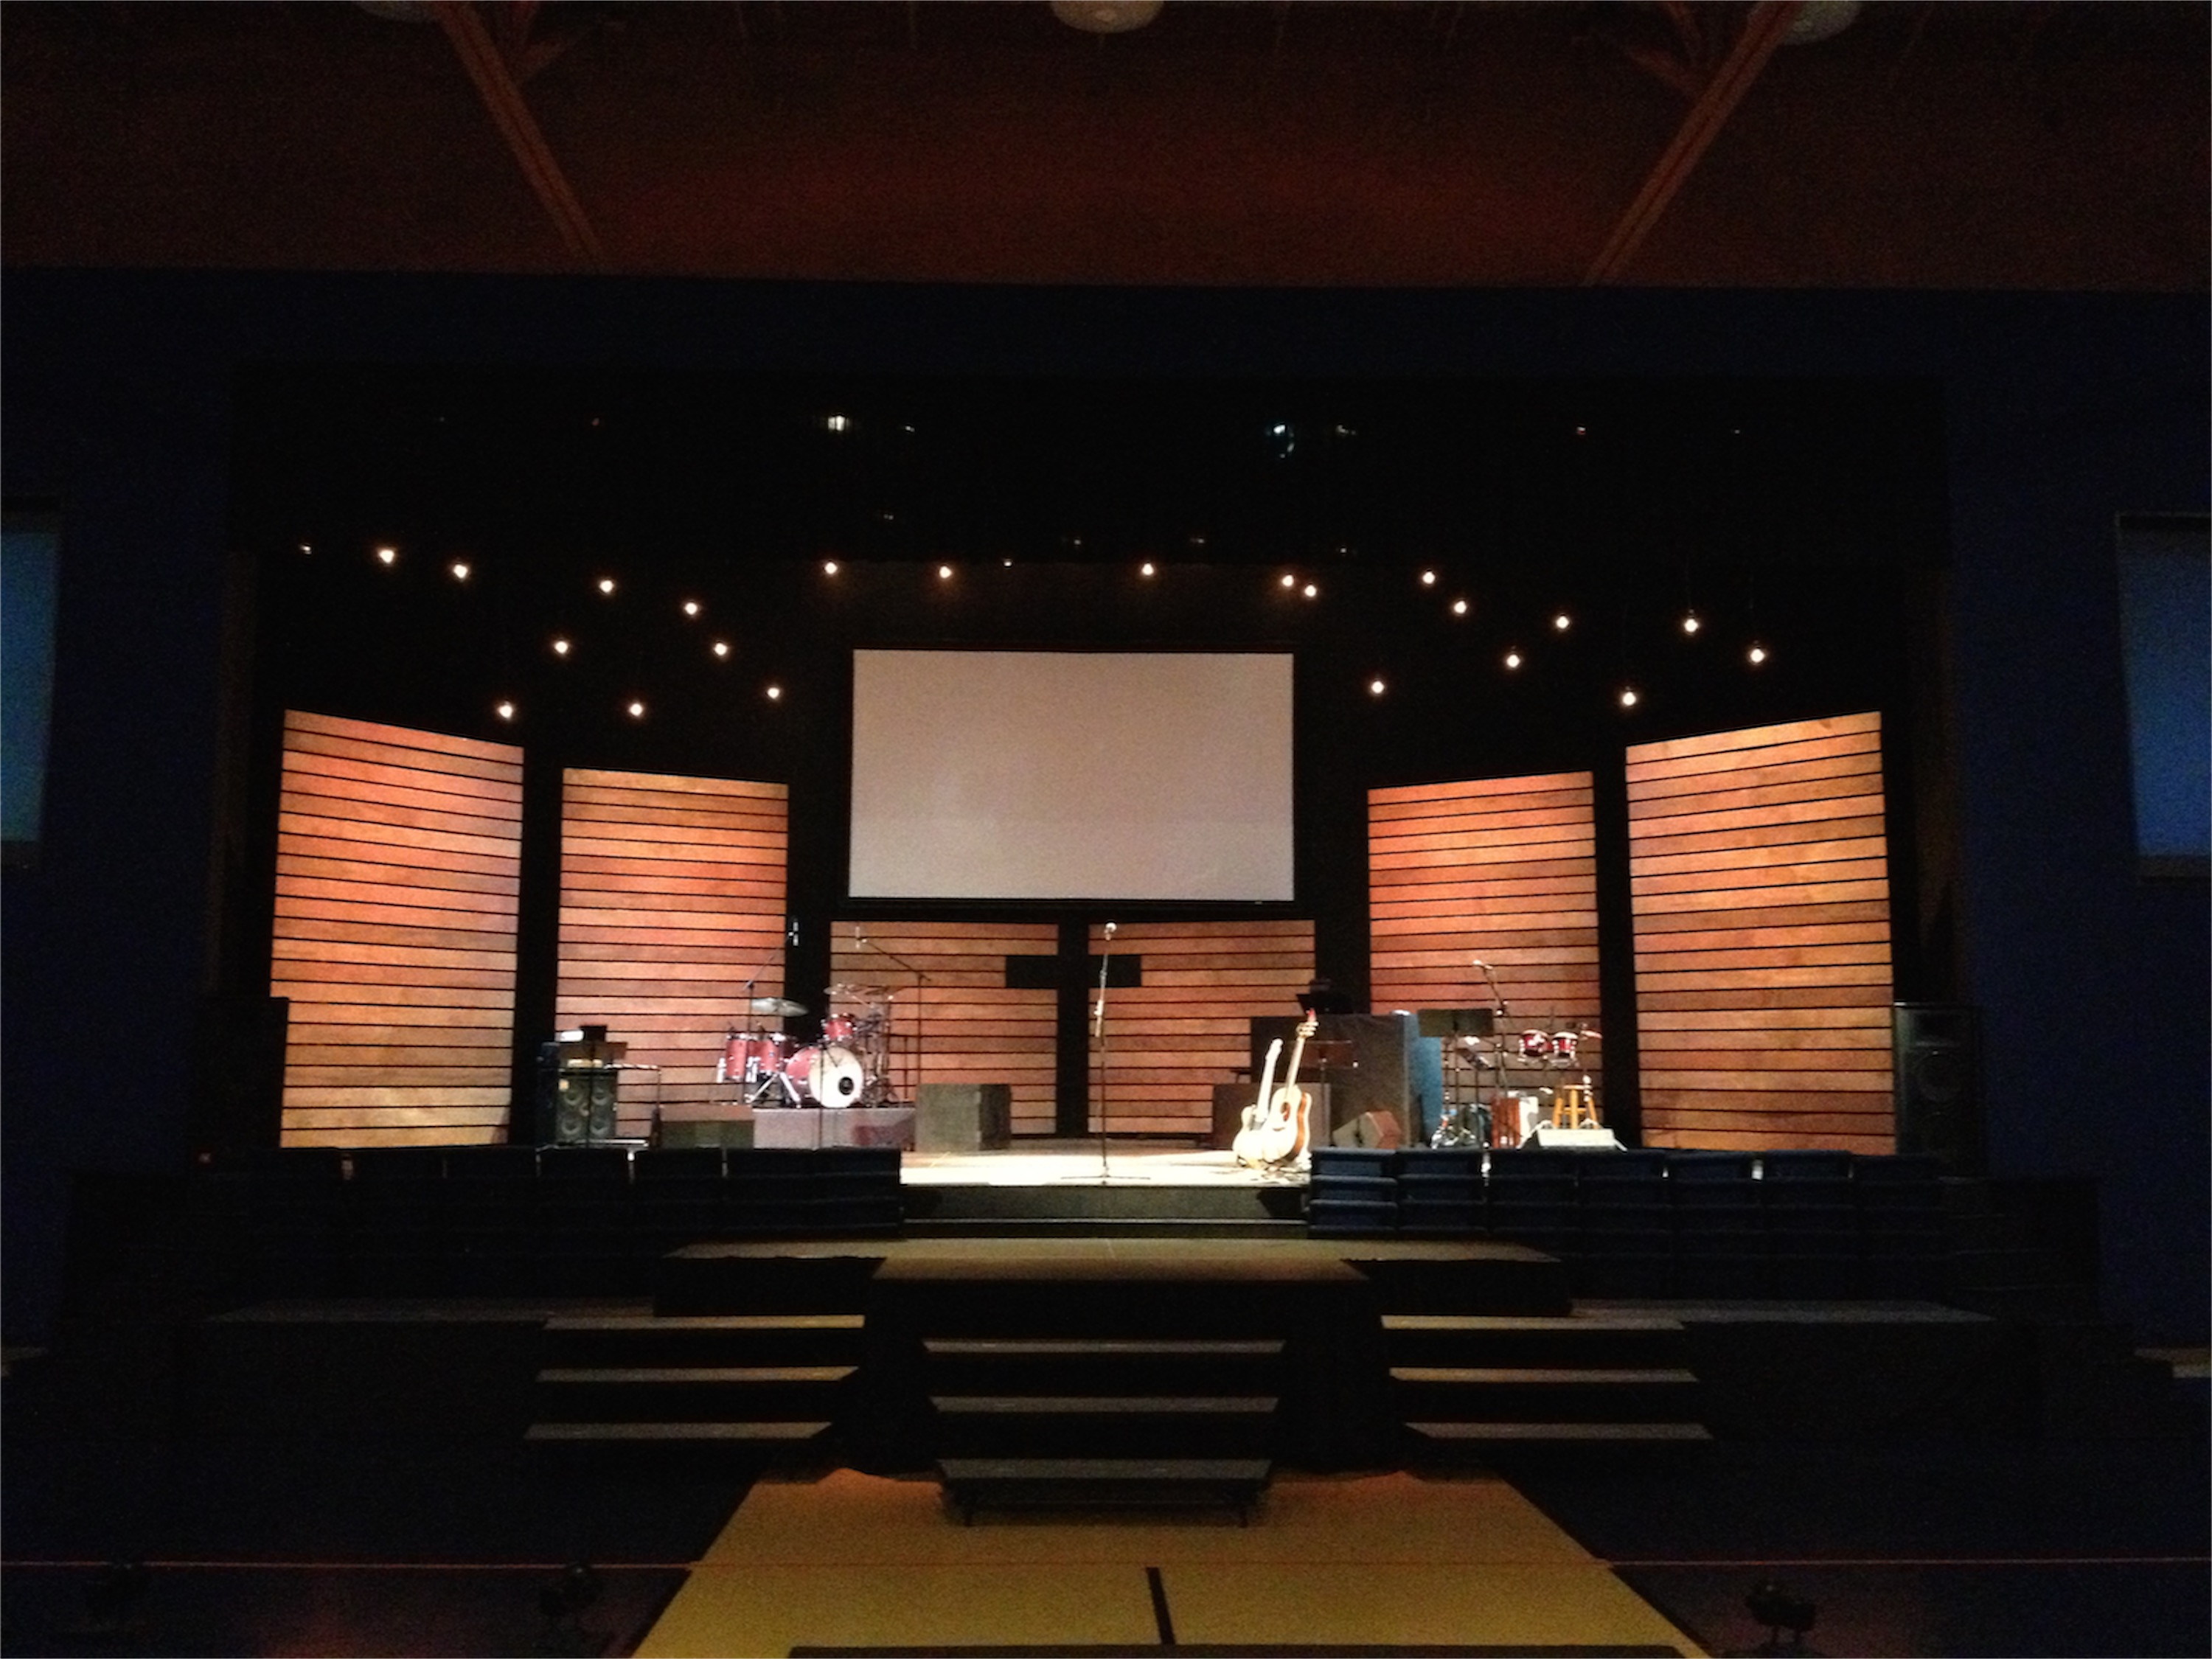 Thin Lines Church Stage Design Ideas Scenic Sets And Stage Design Ideas From Churches Around The Globe